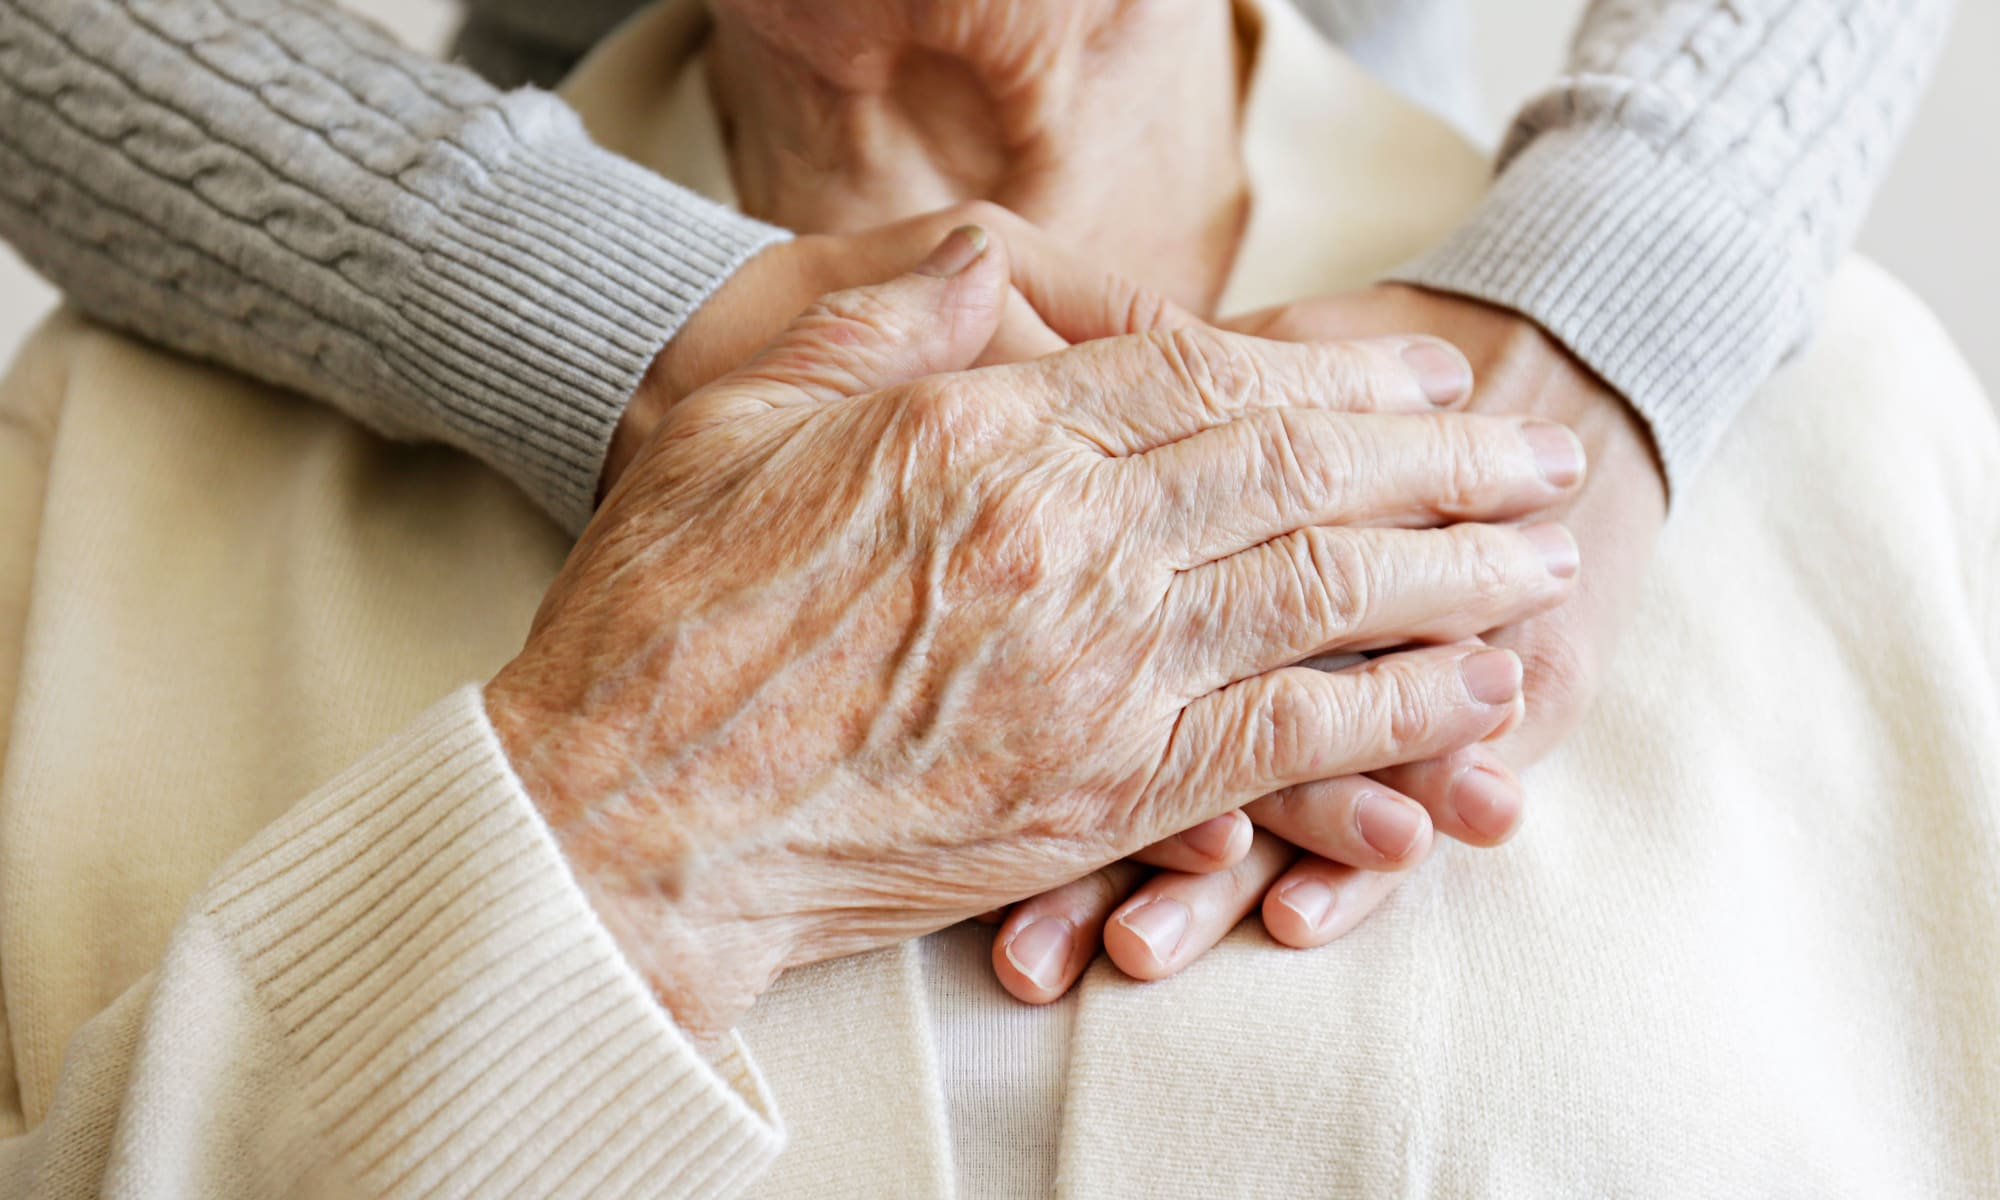 Hands embracing at Broadwell Senior Living in Plymouth, Minnesota